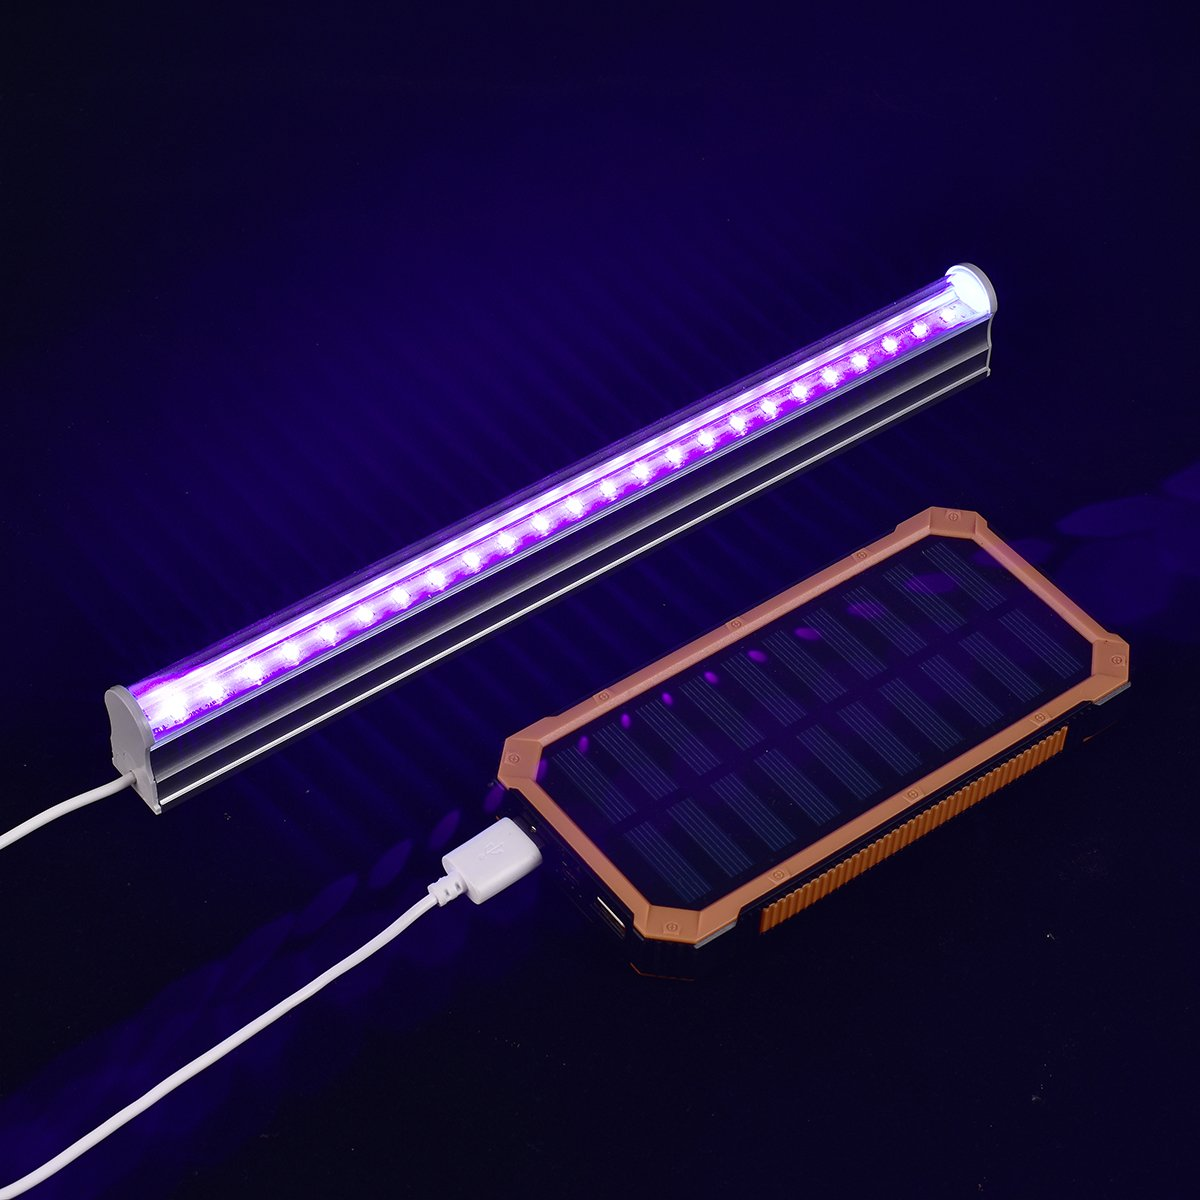 Uv Led Black Light Fixtures Leciel 6w Portable Blacklight Lamp For Poster Art Ultraviolet Curing Authentication Currency Or Stain Detector